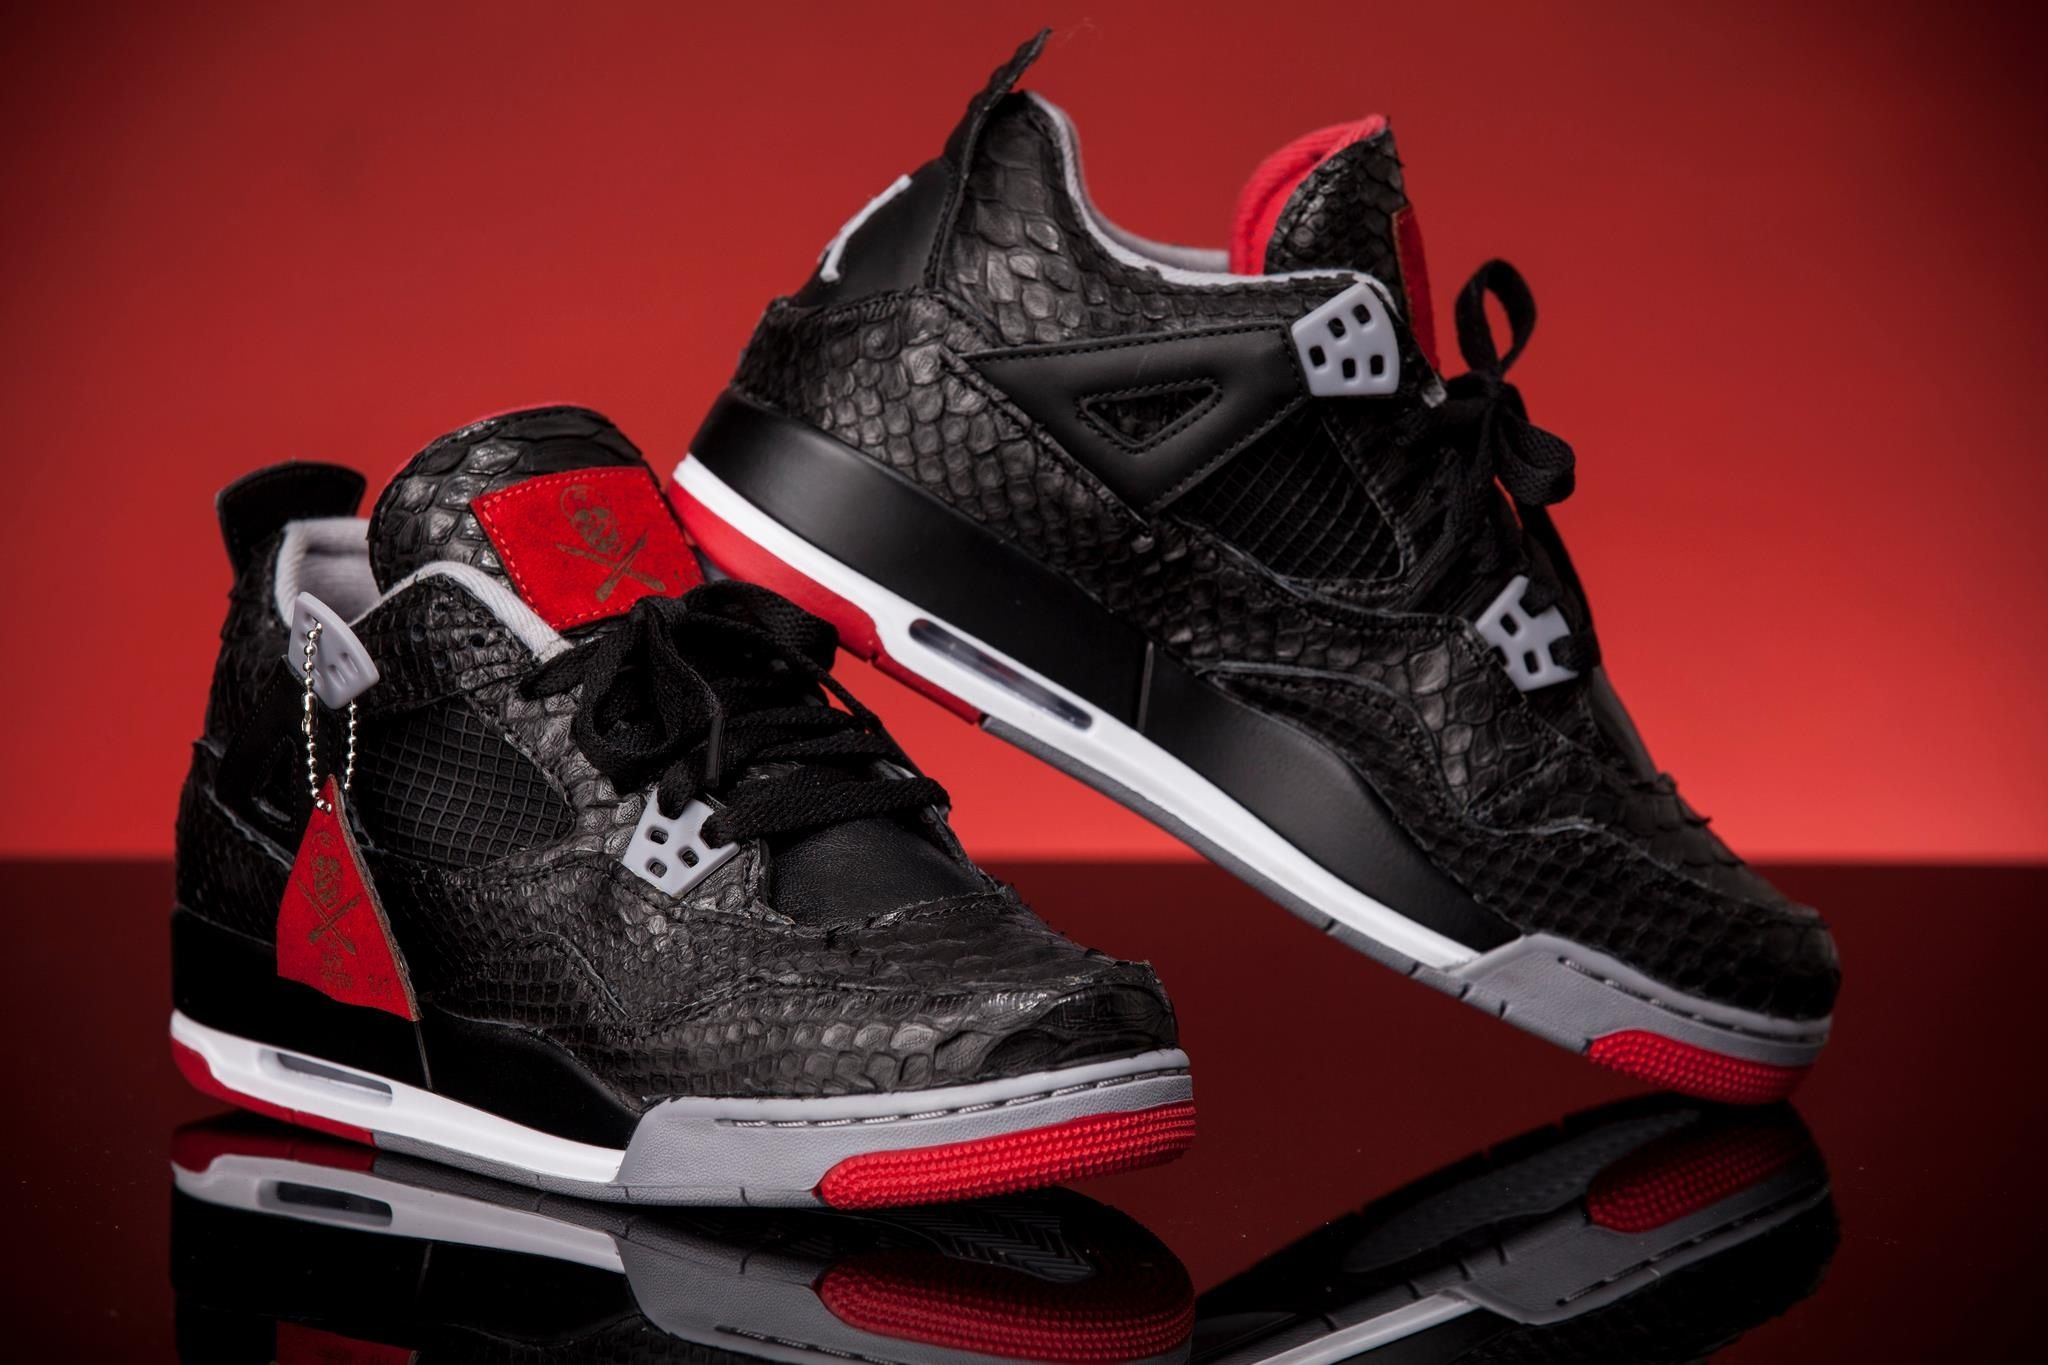 brand new 3607f 72a67 Jordan IV Bred Python leather - custom by the shoe surgeon